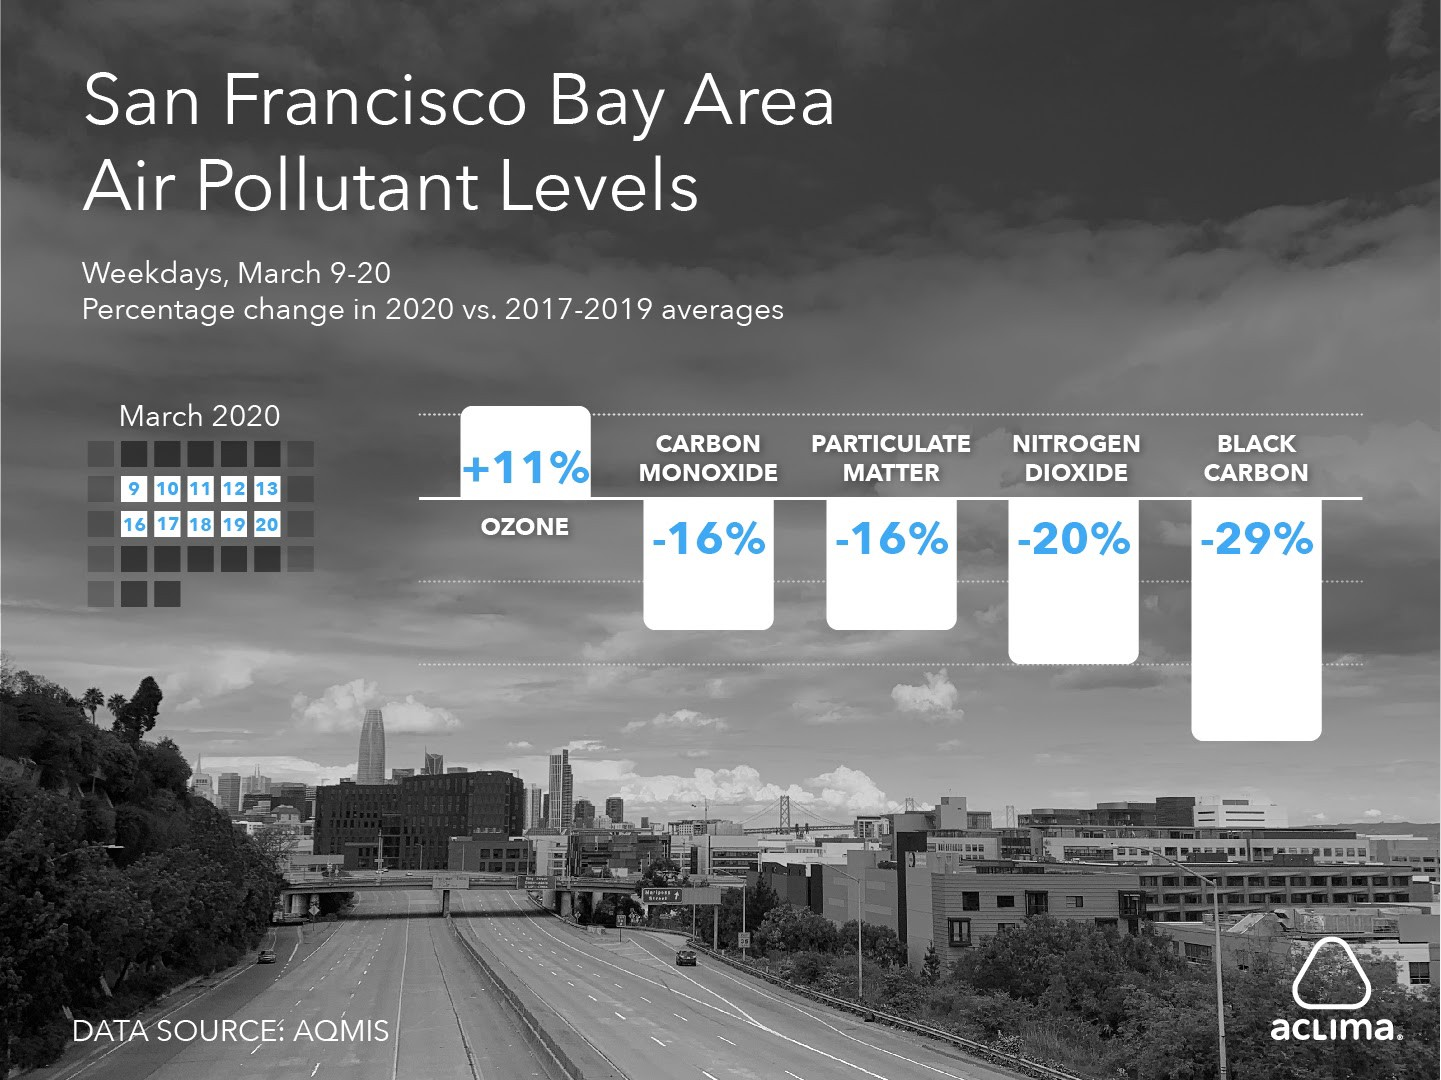 Weekday air pollutant levels drop following Bay Area COVID-19 response.